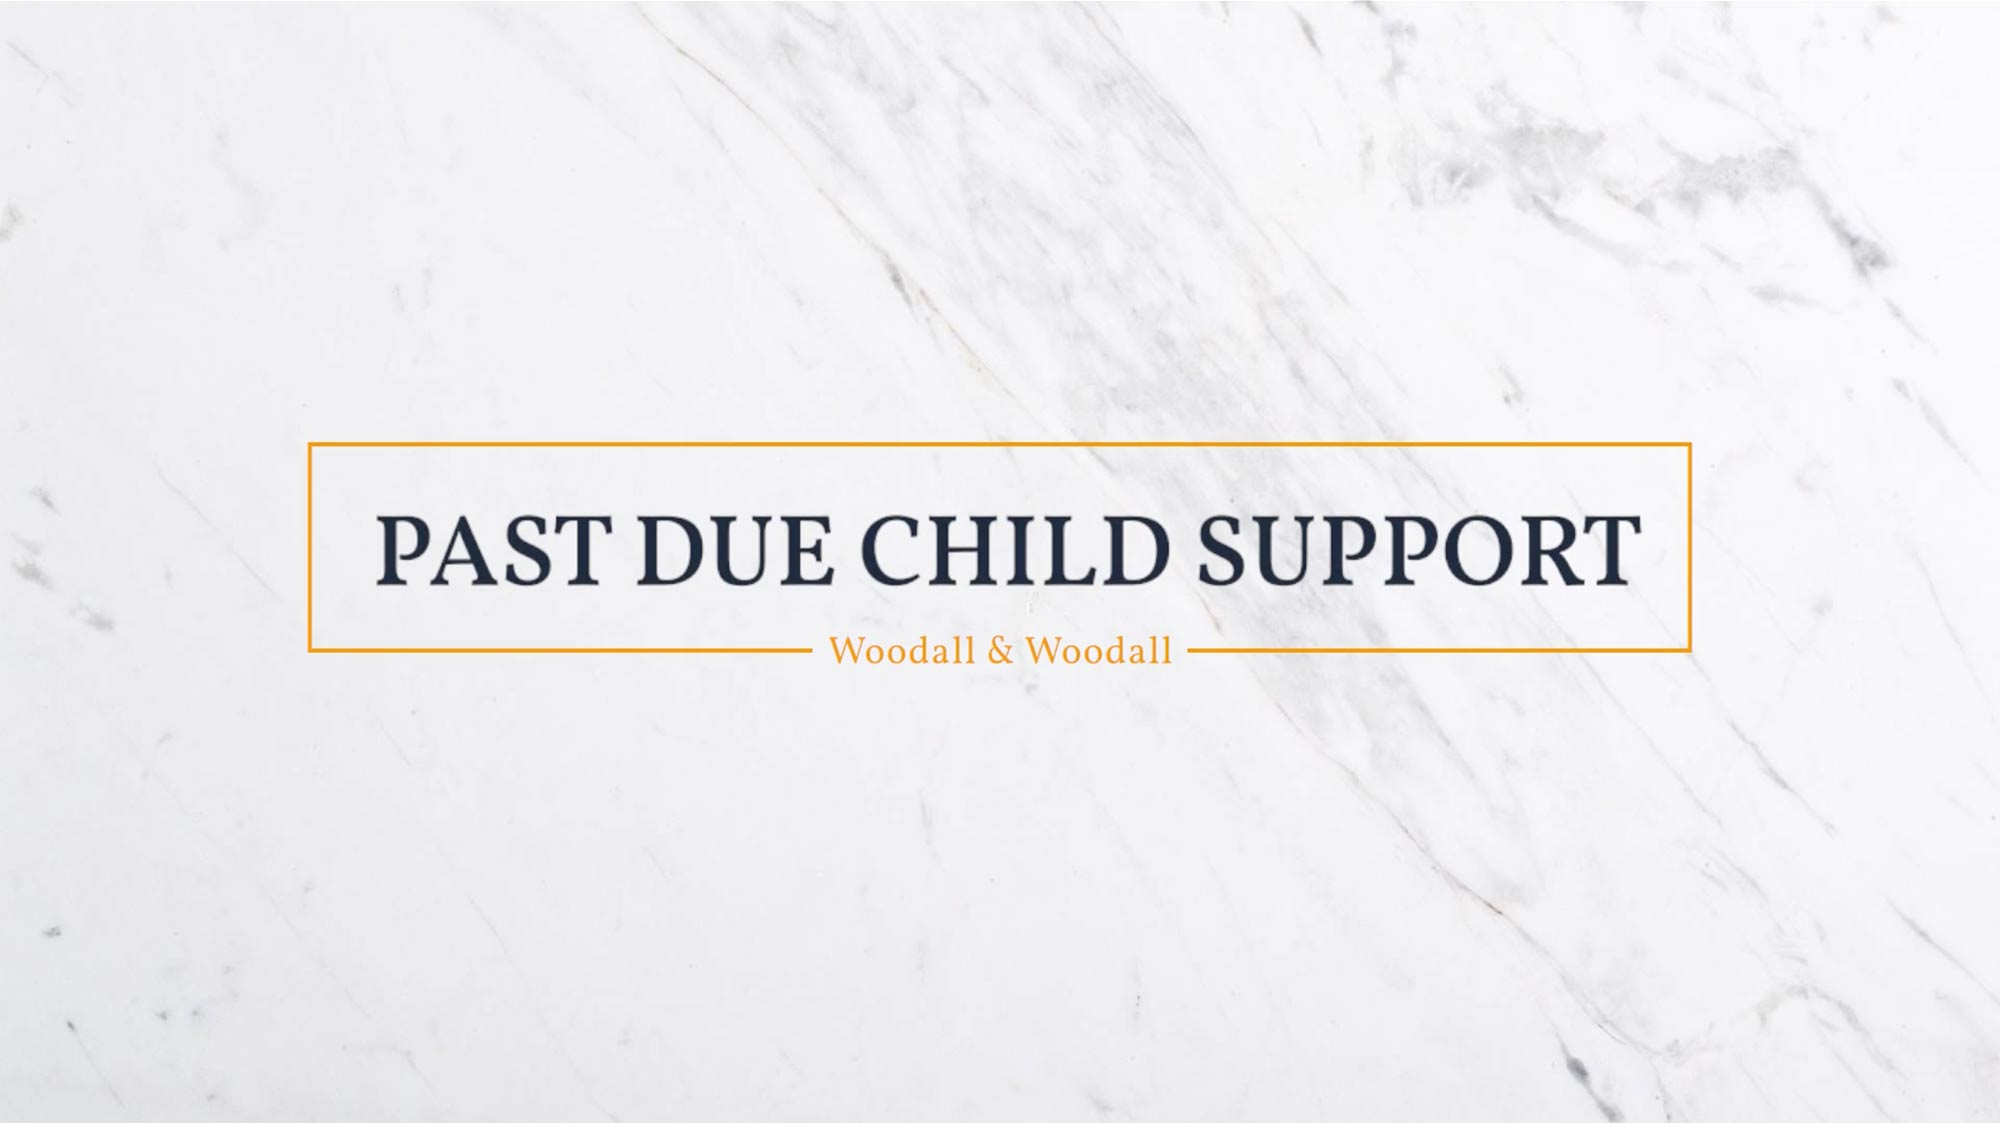 debt_child support.jpg